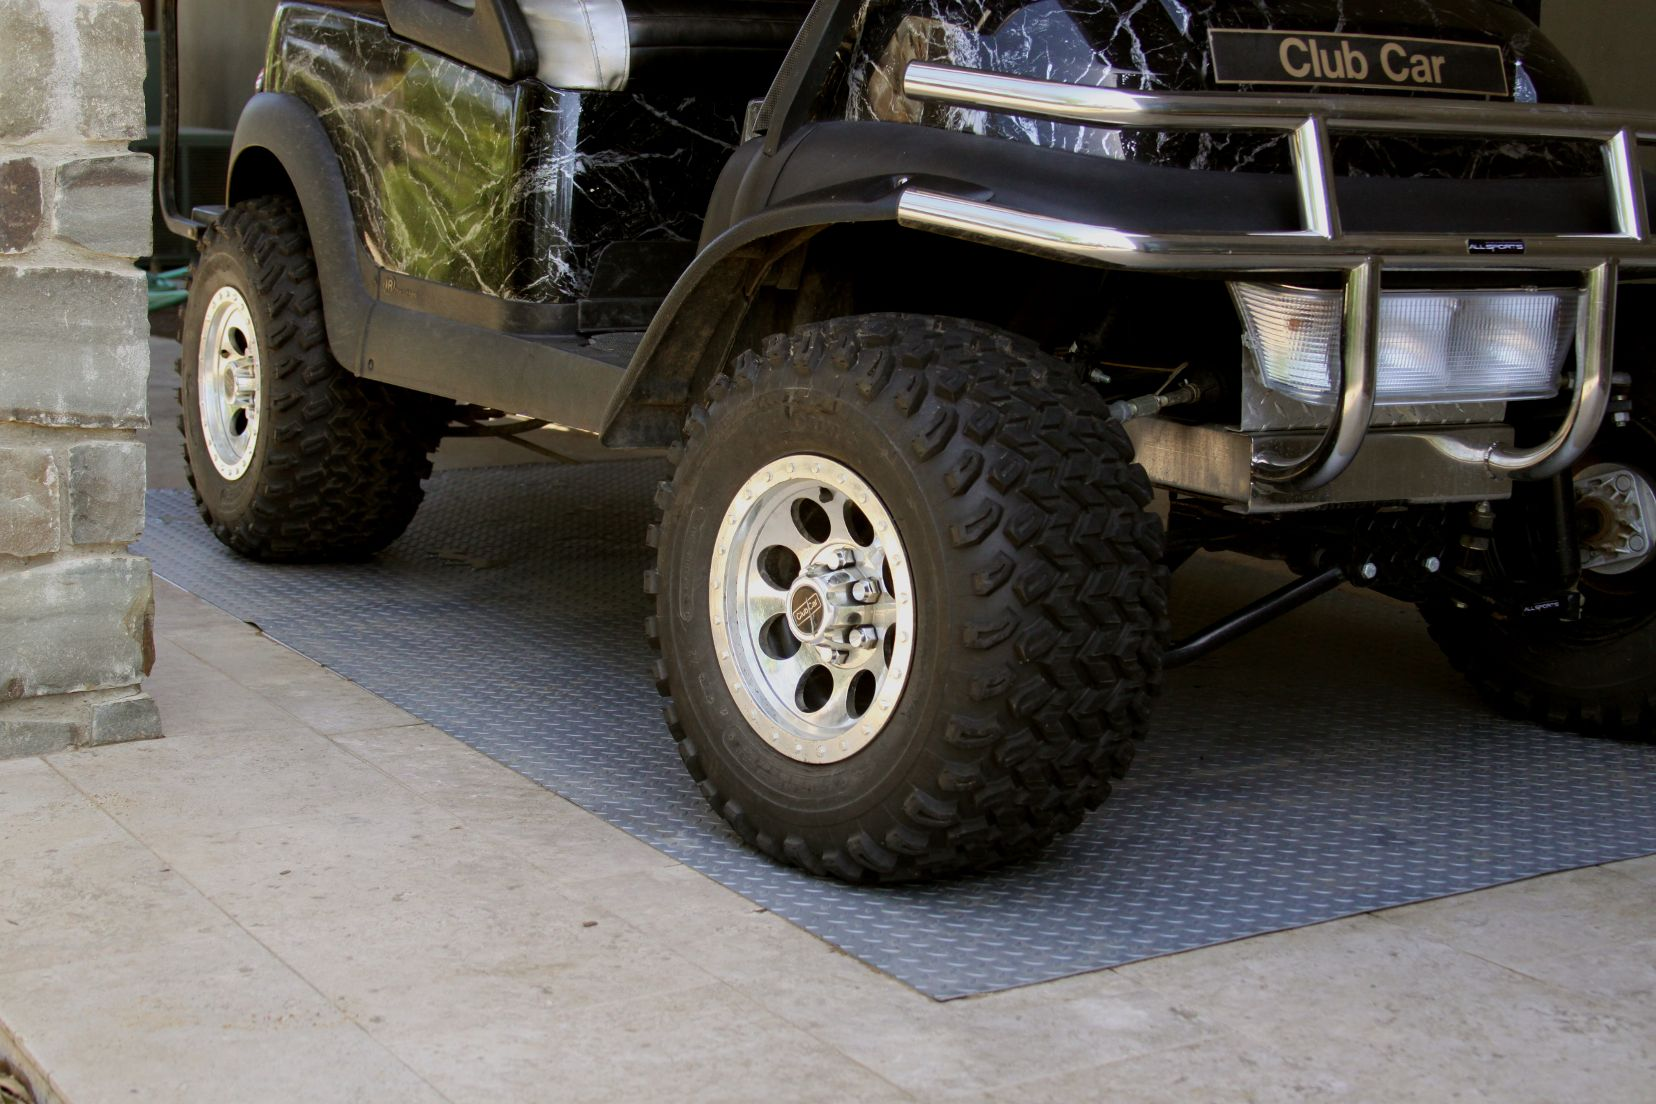 cheap garage flooring graphitetruck floor diamond mats mat deck ddgraphitetruck llc